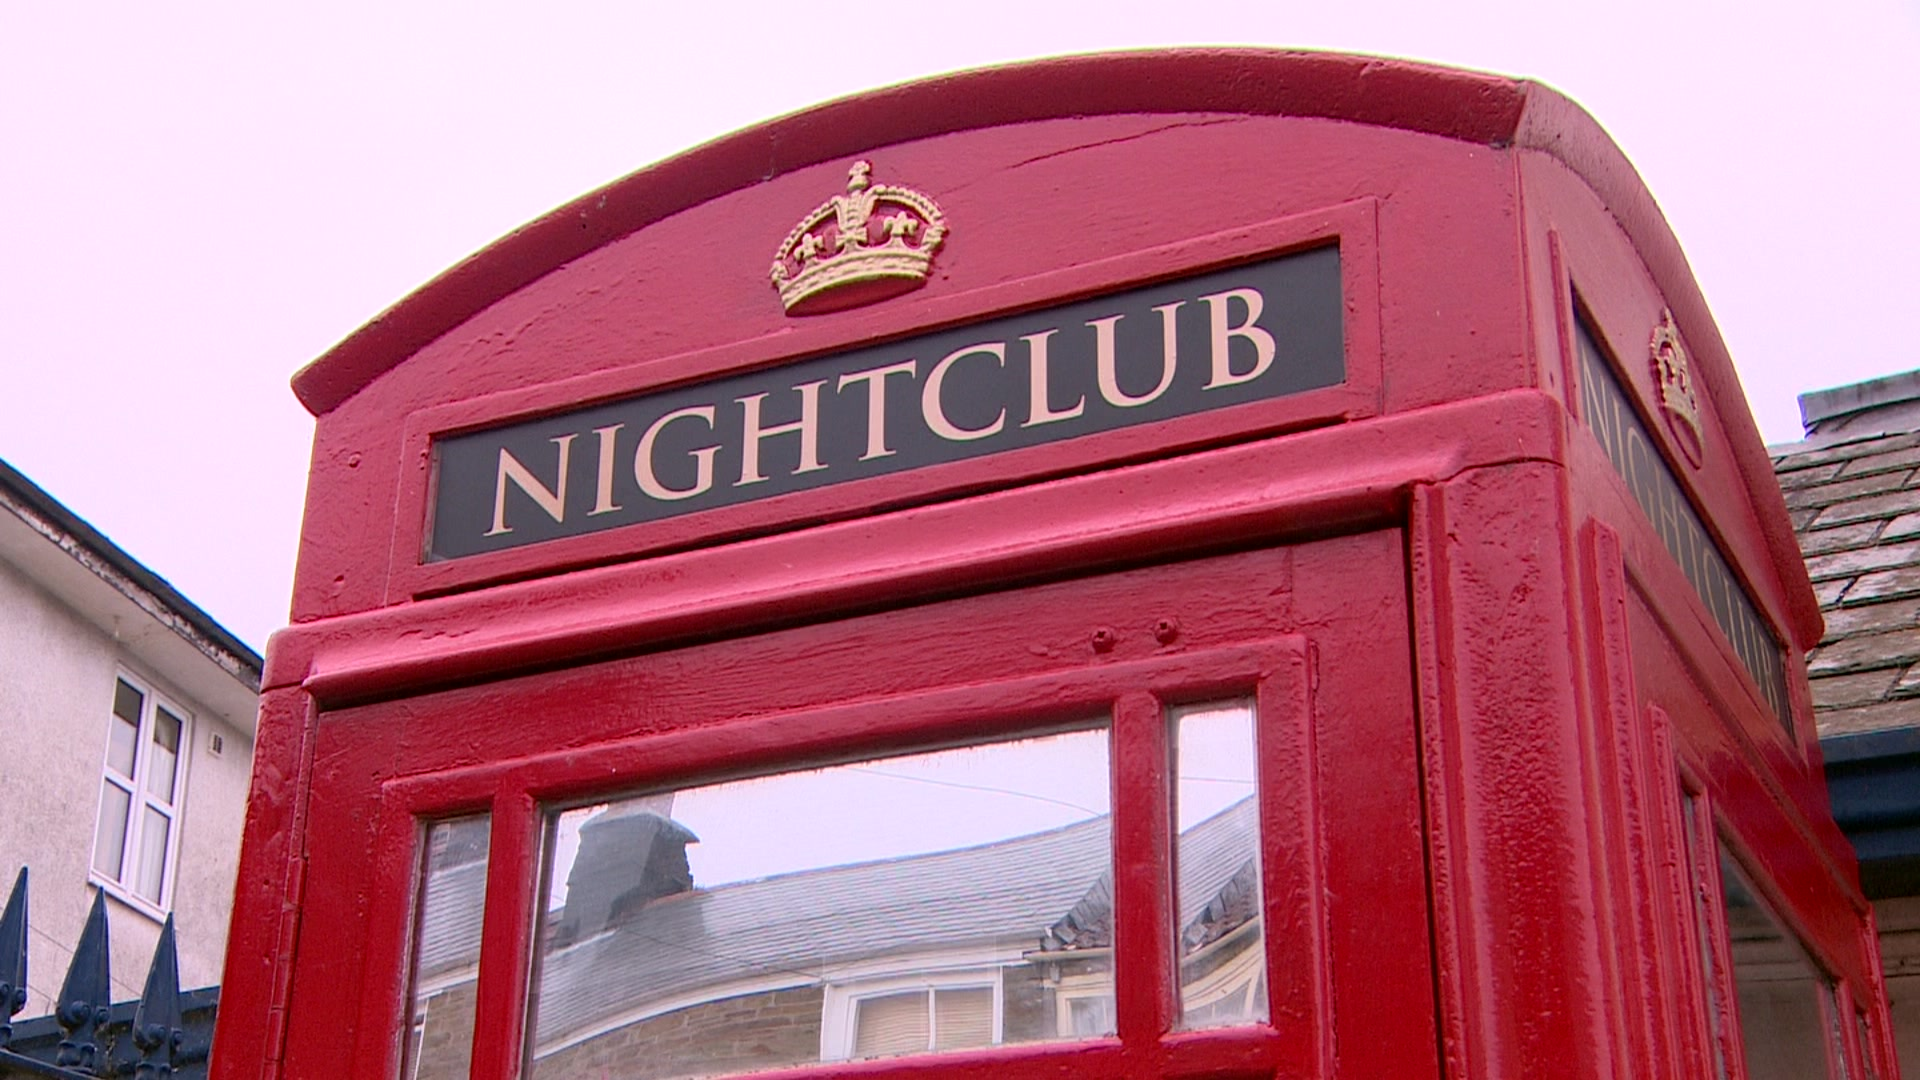 Kingsbridge phone box converted into nightclub